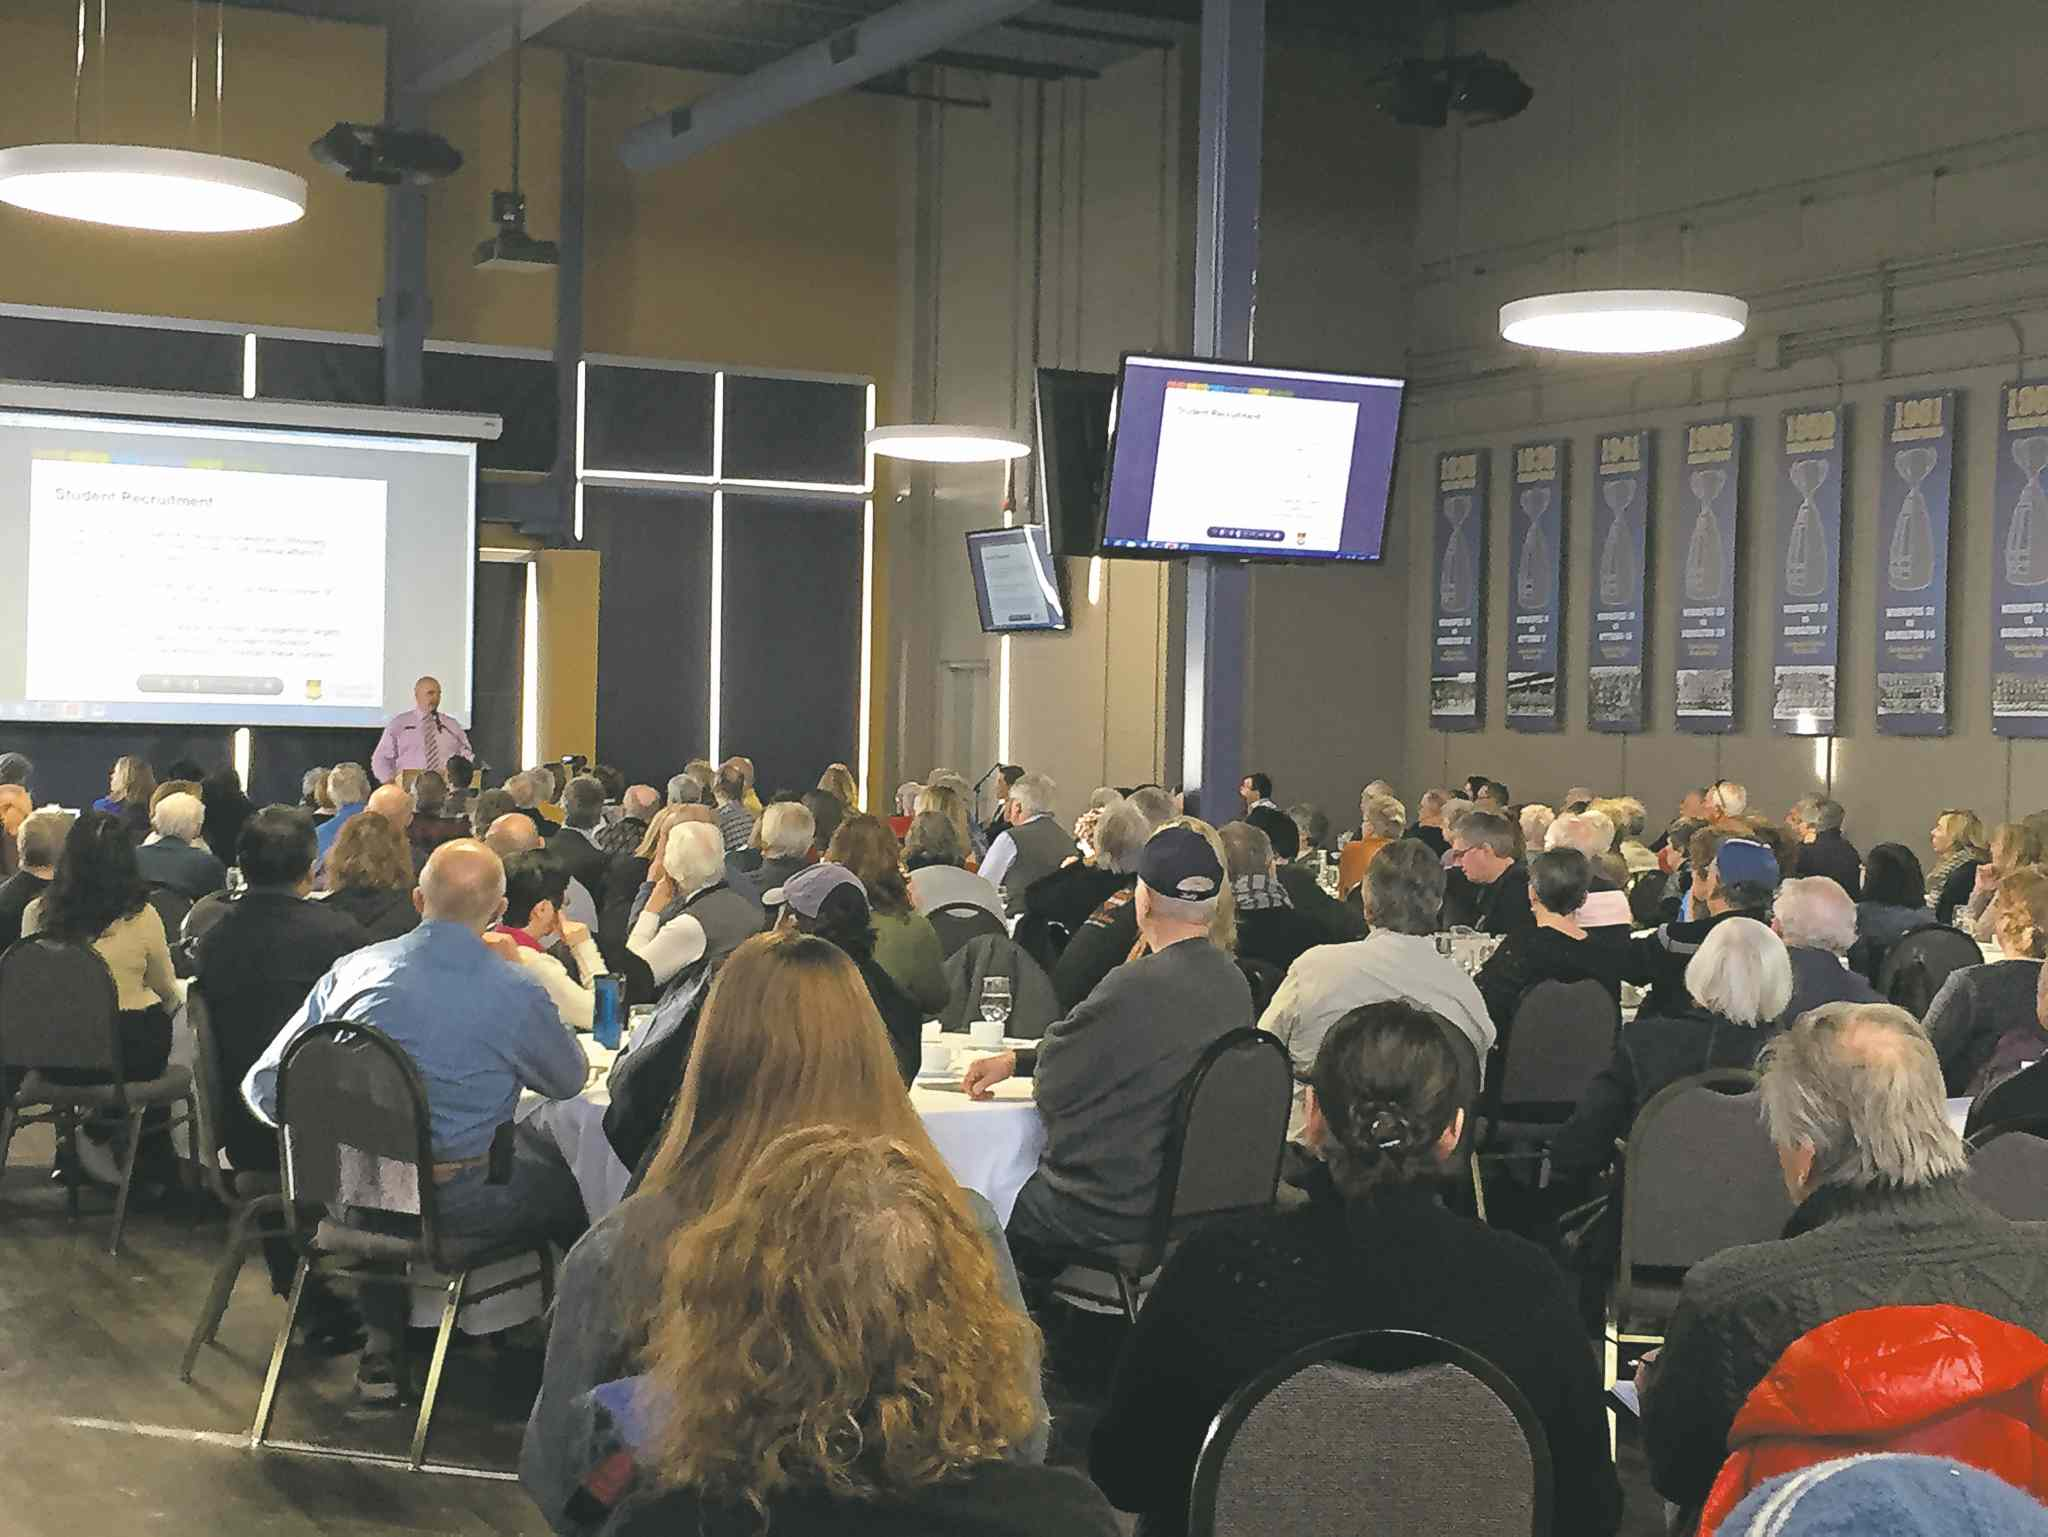 Approximately 200 people from the Fort Richmond area attended a community conversation on rental housing around the University of Manitoba on Jan. 31.